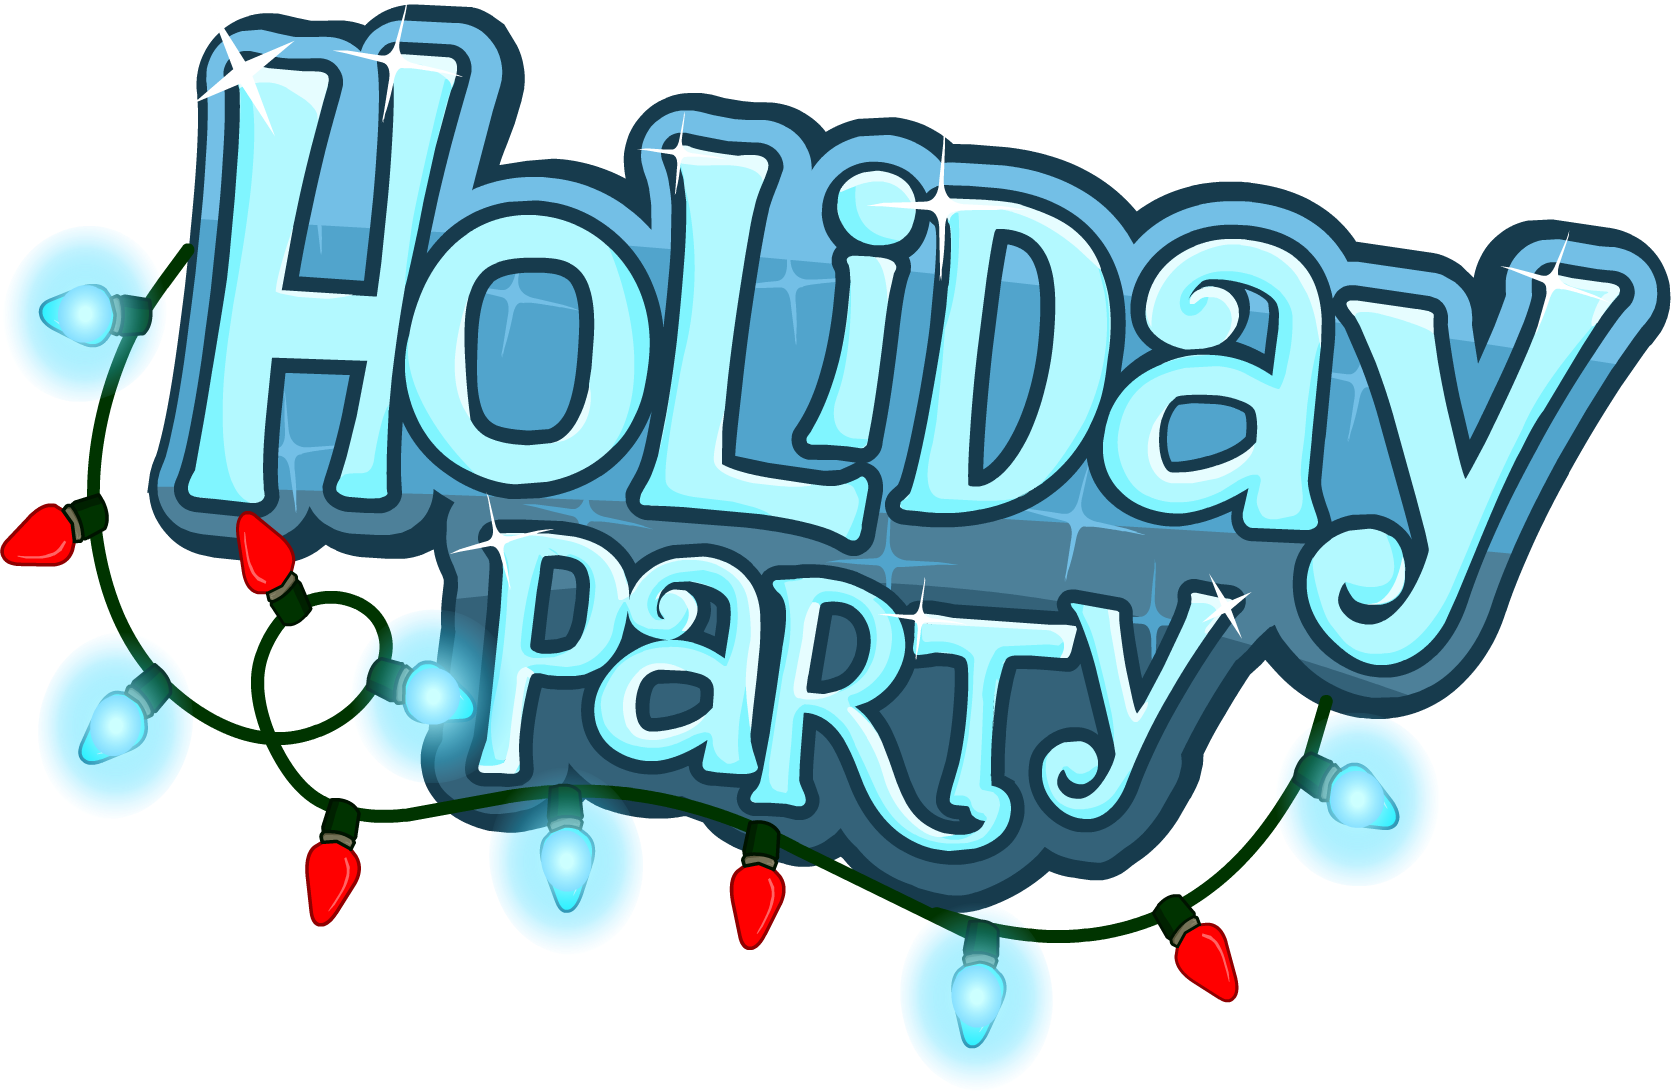 Holydays clipart holiday party  holiday_party_logo Party Martial and